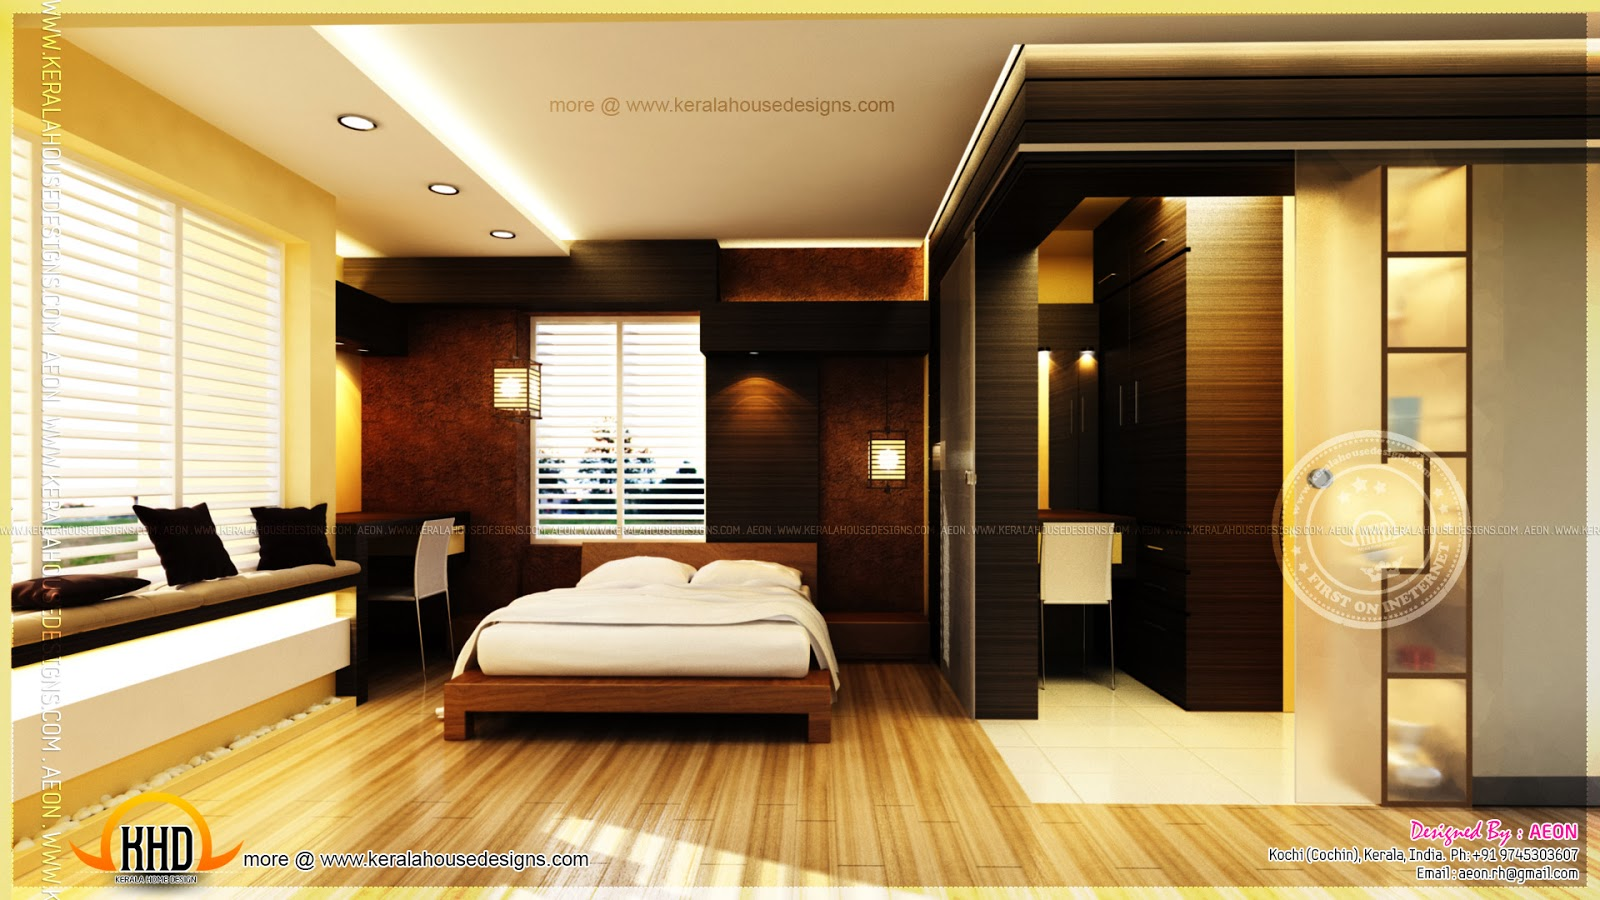 nggibrutBeautiful Bedrooms In Kerala #13